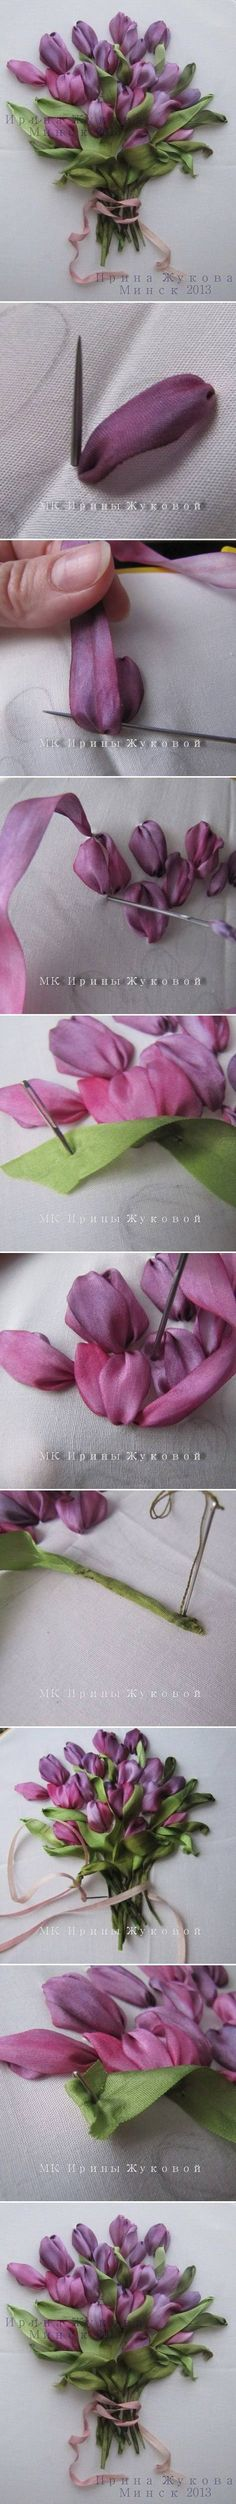 Ribbon Embroidery Flowers by Hand - Embroidery Patterns Ribbon Art, Ribbon Crafts, Fabric Crafts, Sewing Crafts, Ribbon Flower, Diy Ribbon, Ribbon Bouquet, Tulip Bouquet, Diy Crafts